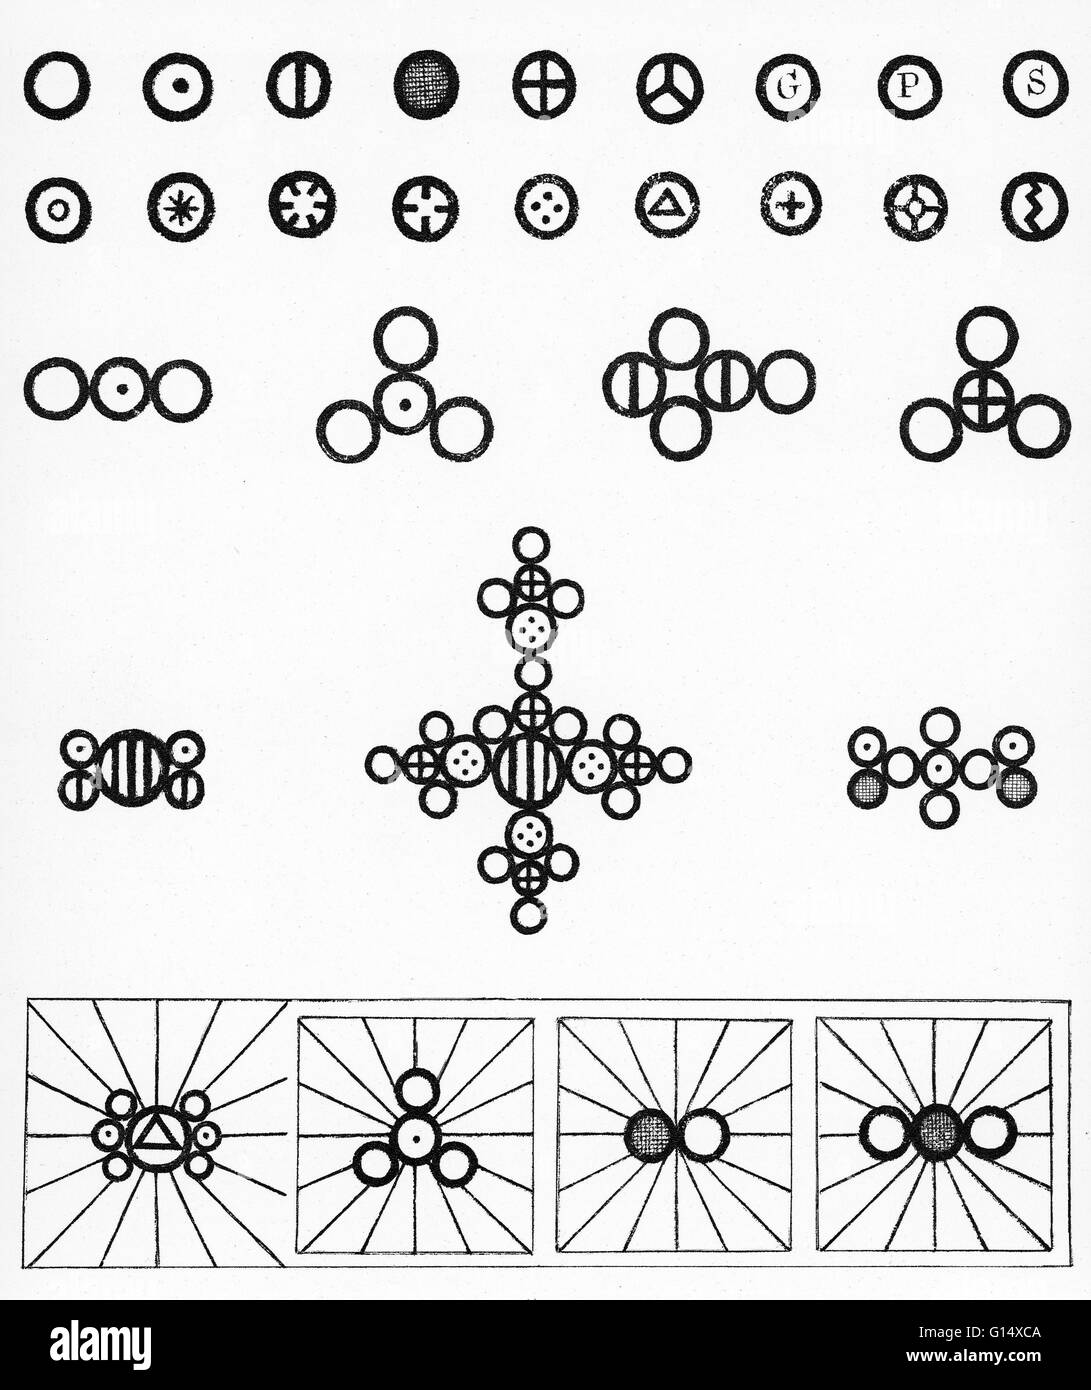 system of signs for chemical substances invented by john dalton the top two rows consist